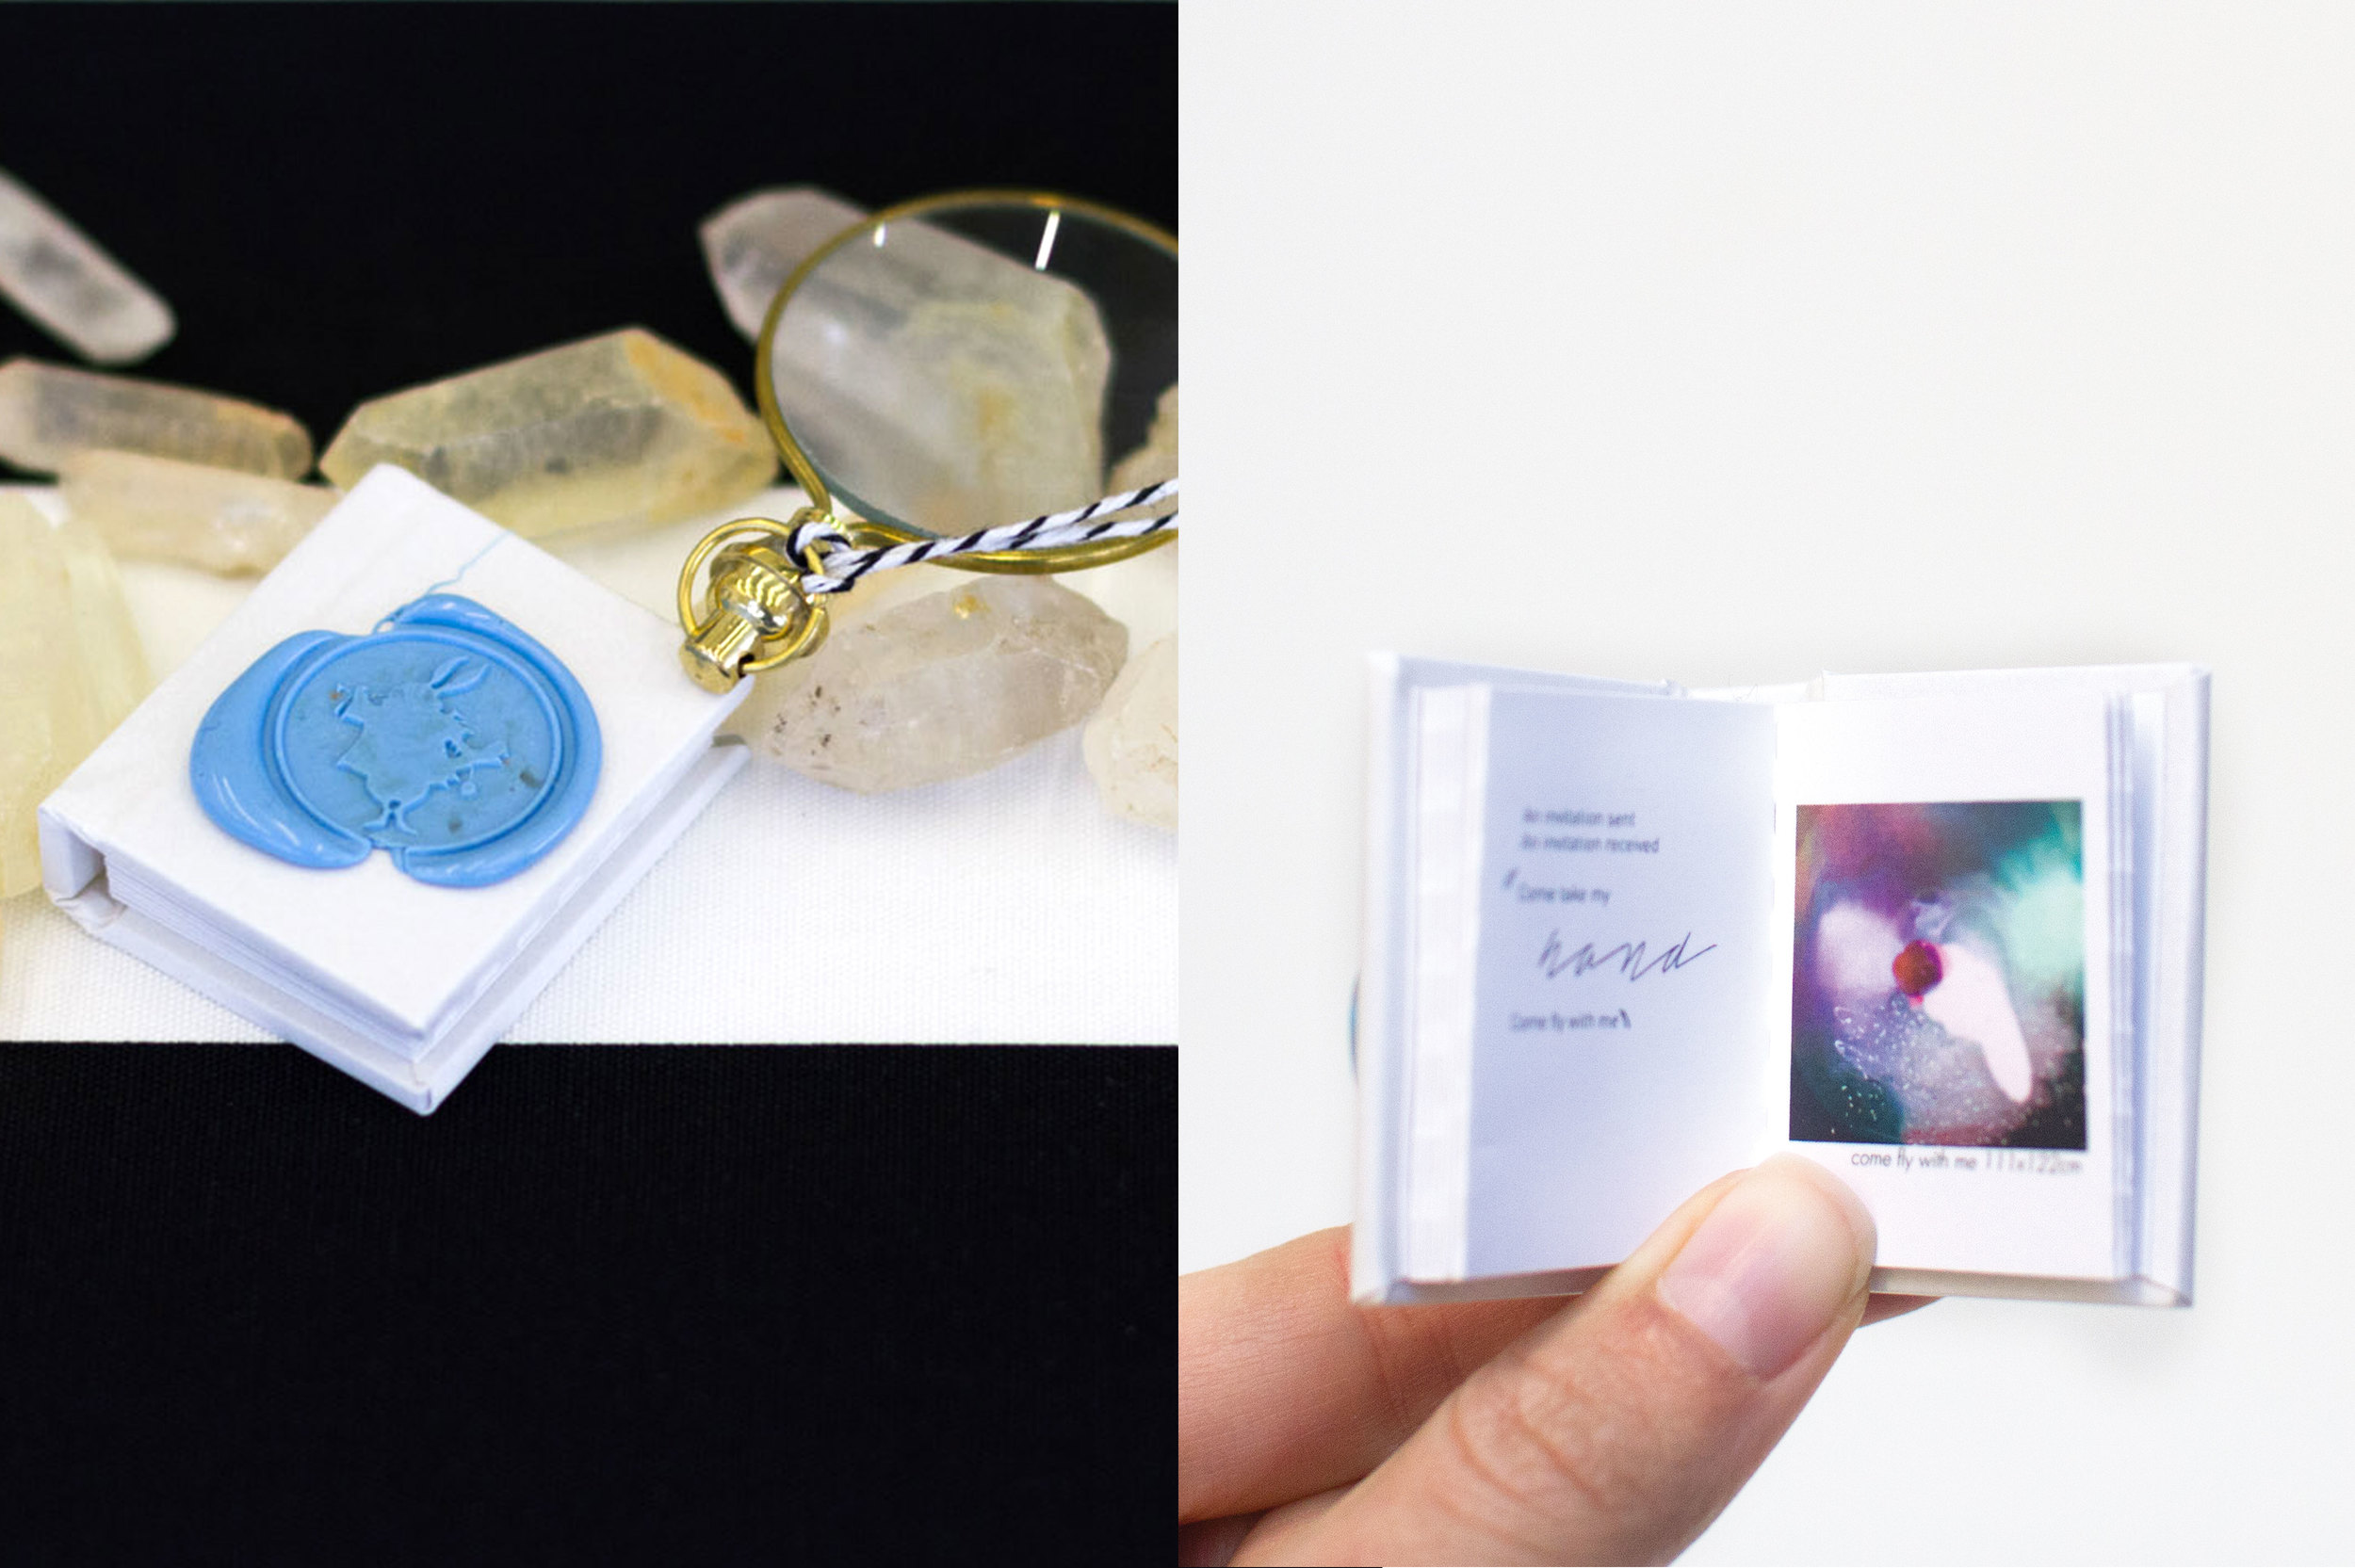 Within the invitation a tiny booklet accompanied by a magnify glass and some special treats were gently wrapped in tissue and placed on a bed of small quartz crystal pieces.